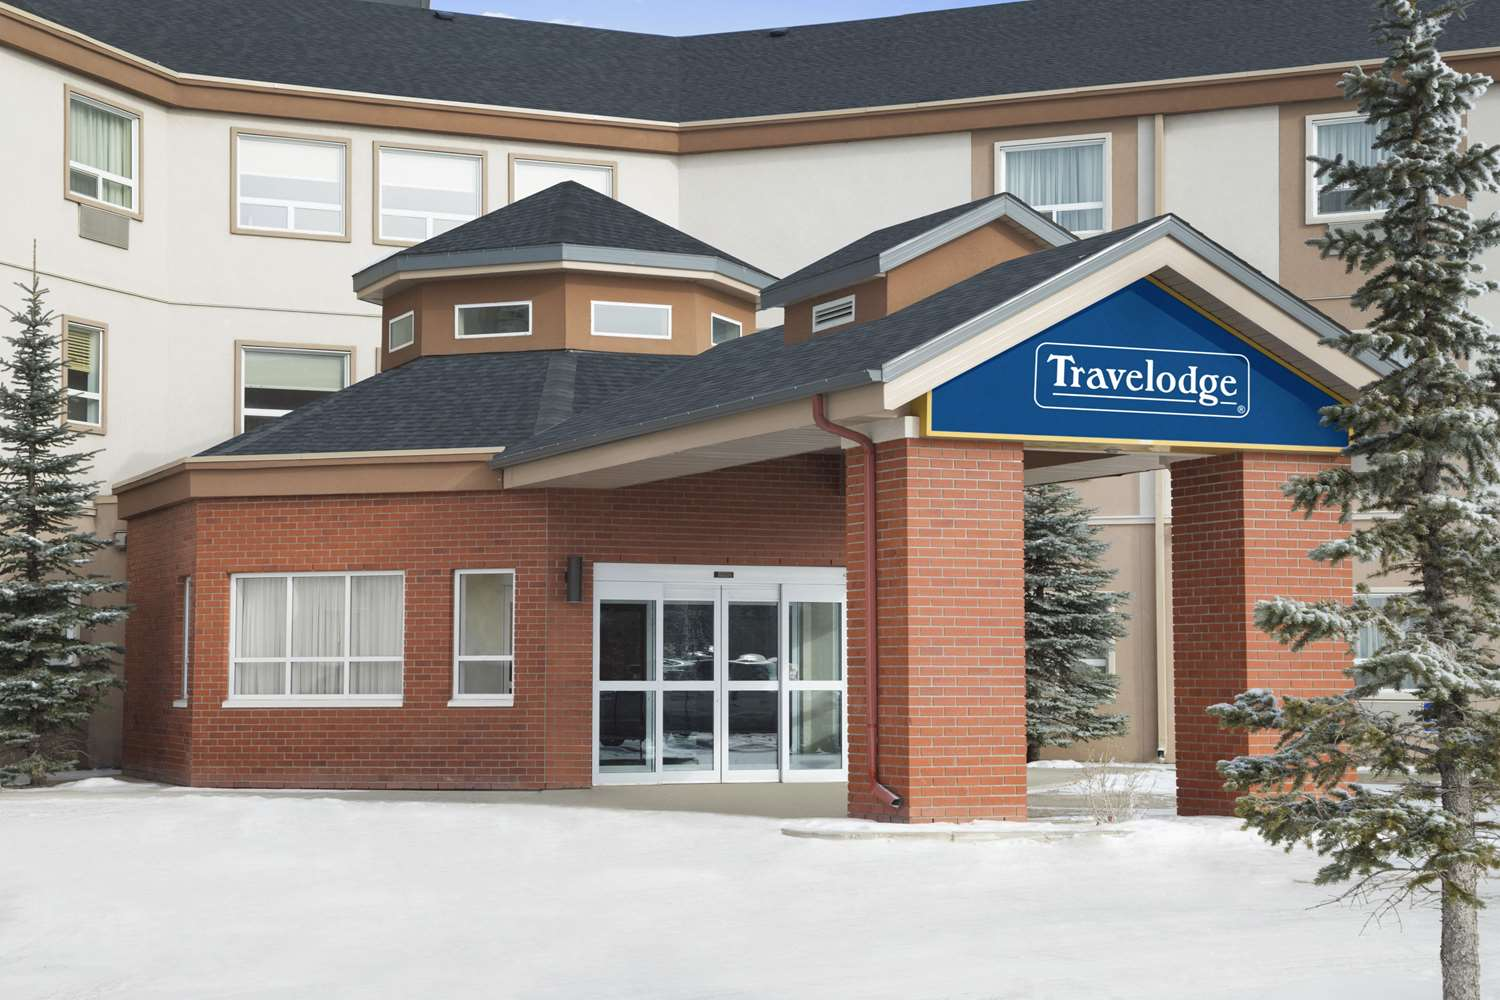 Exterior view - Travelodge Strathmore